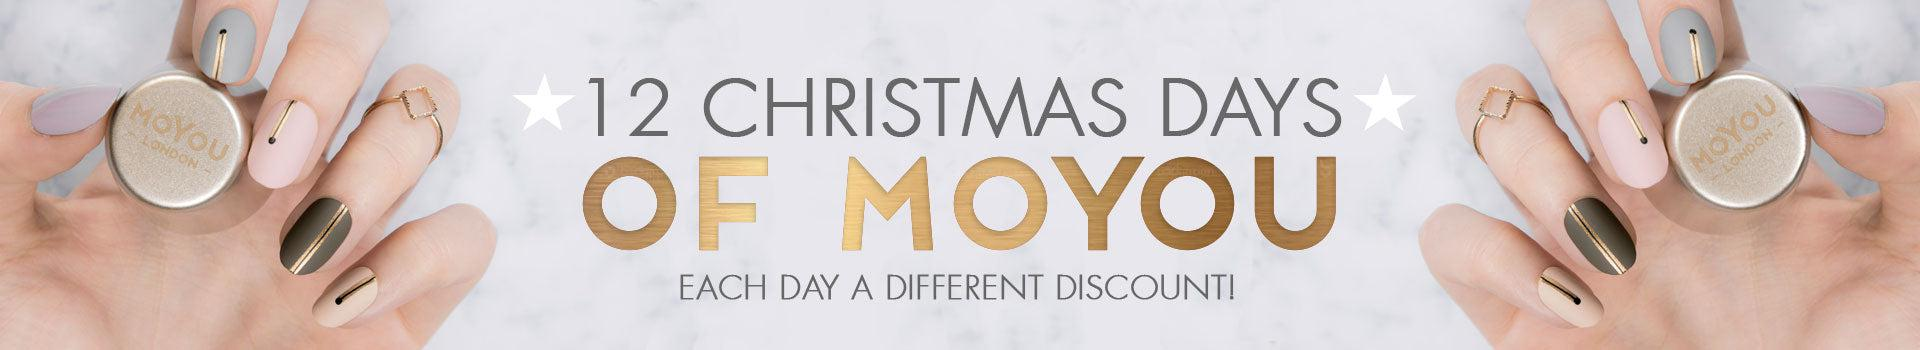 12 DAYS OF MOYOU